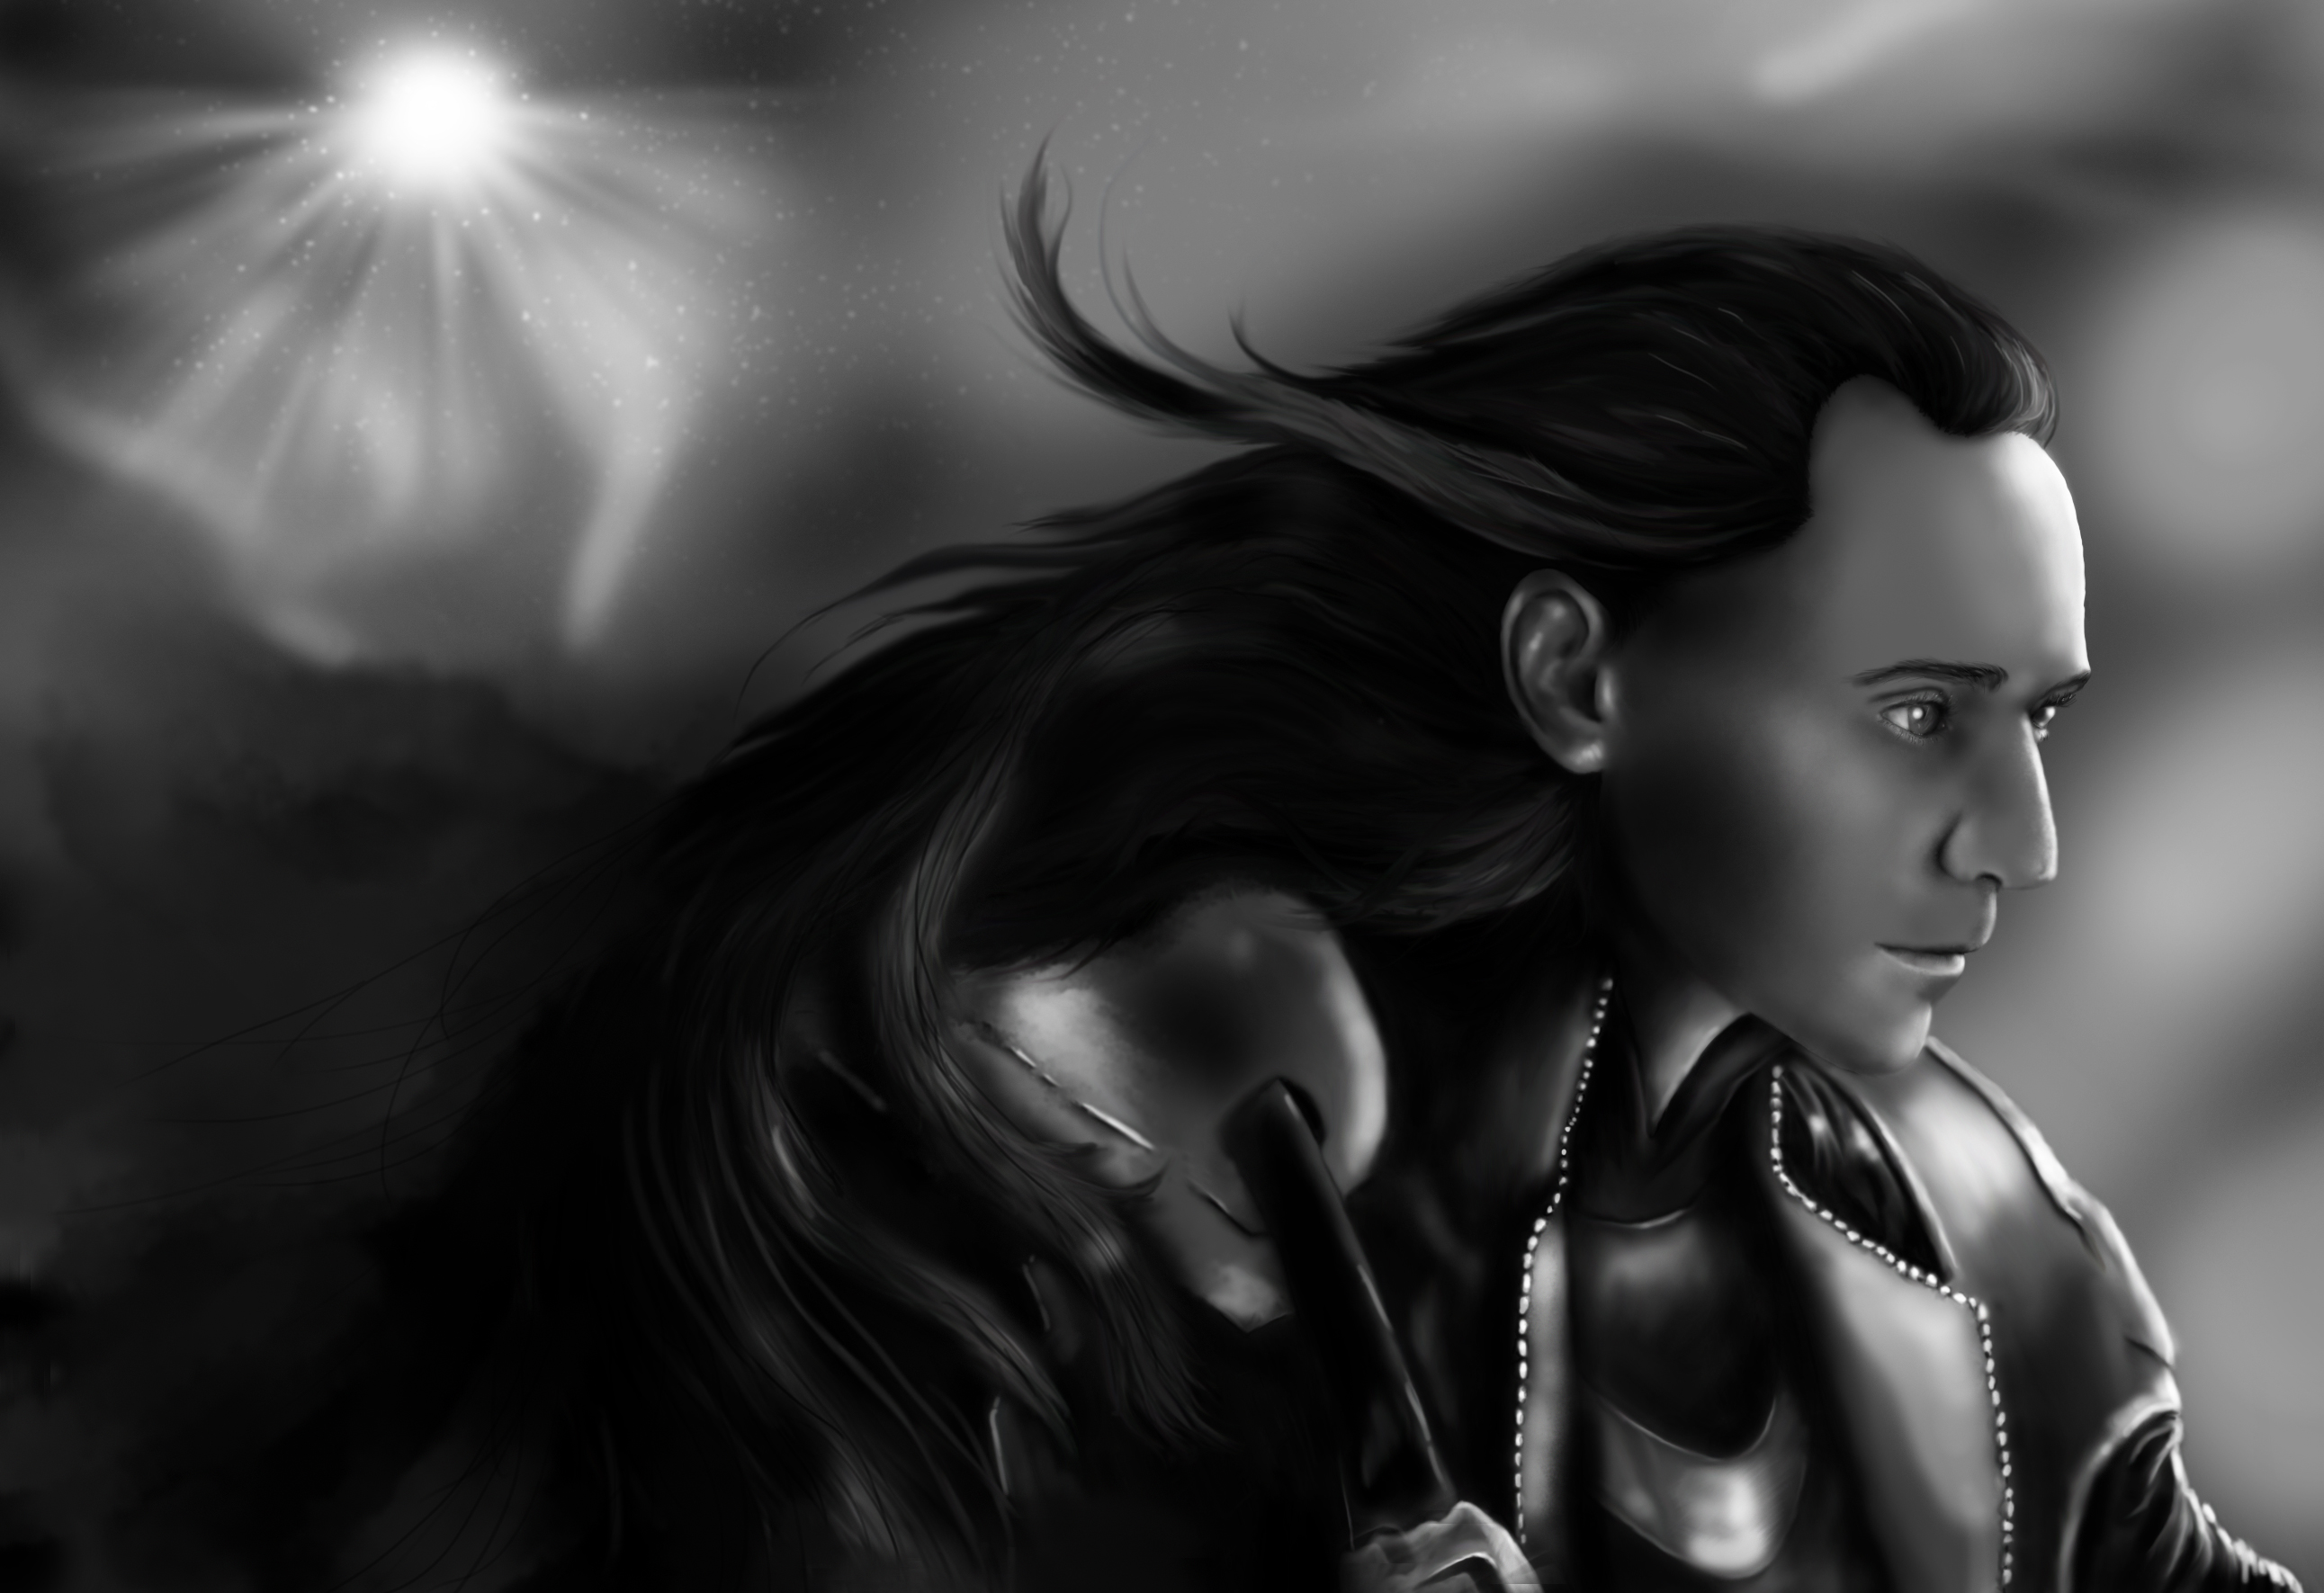 Loki - Revisited by RancidRainbow